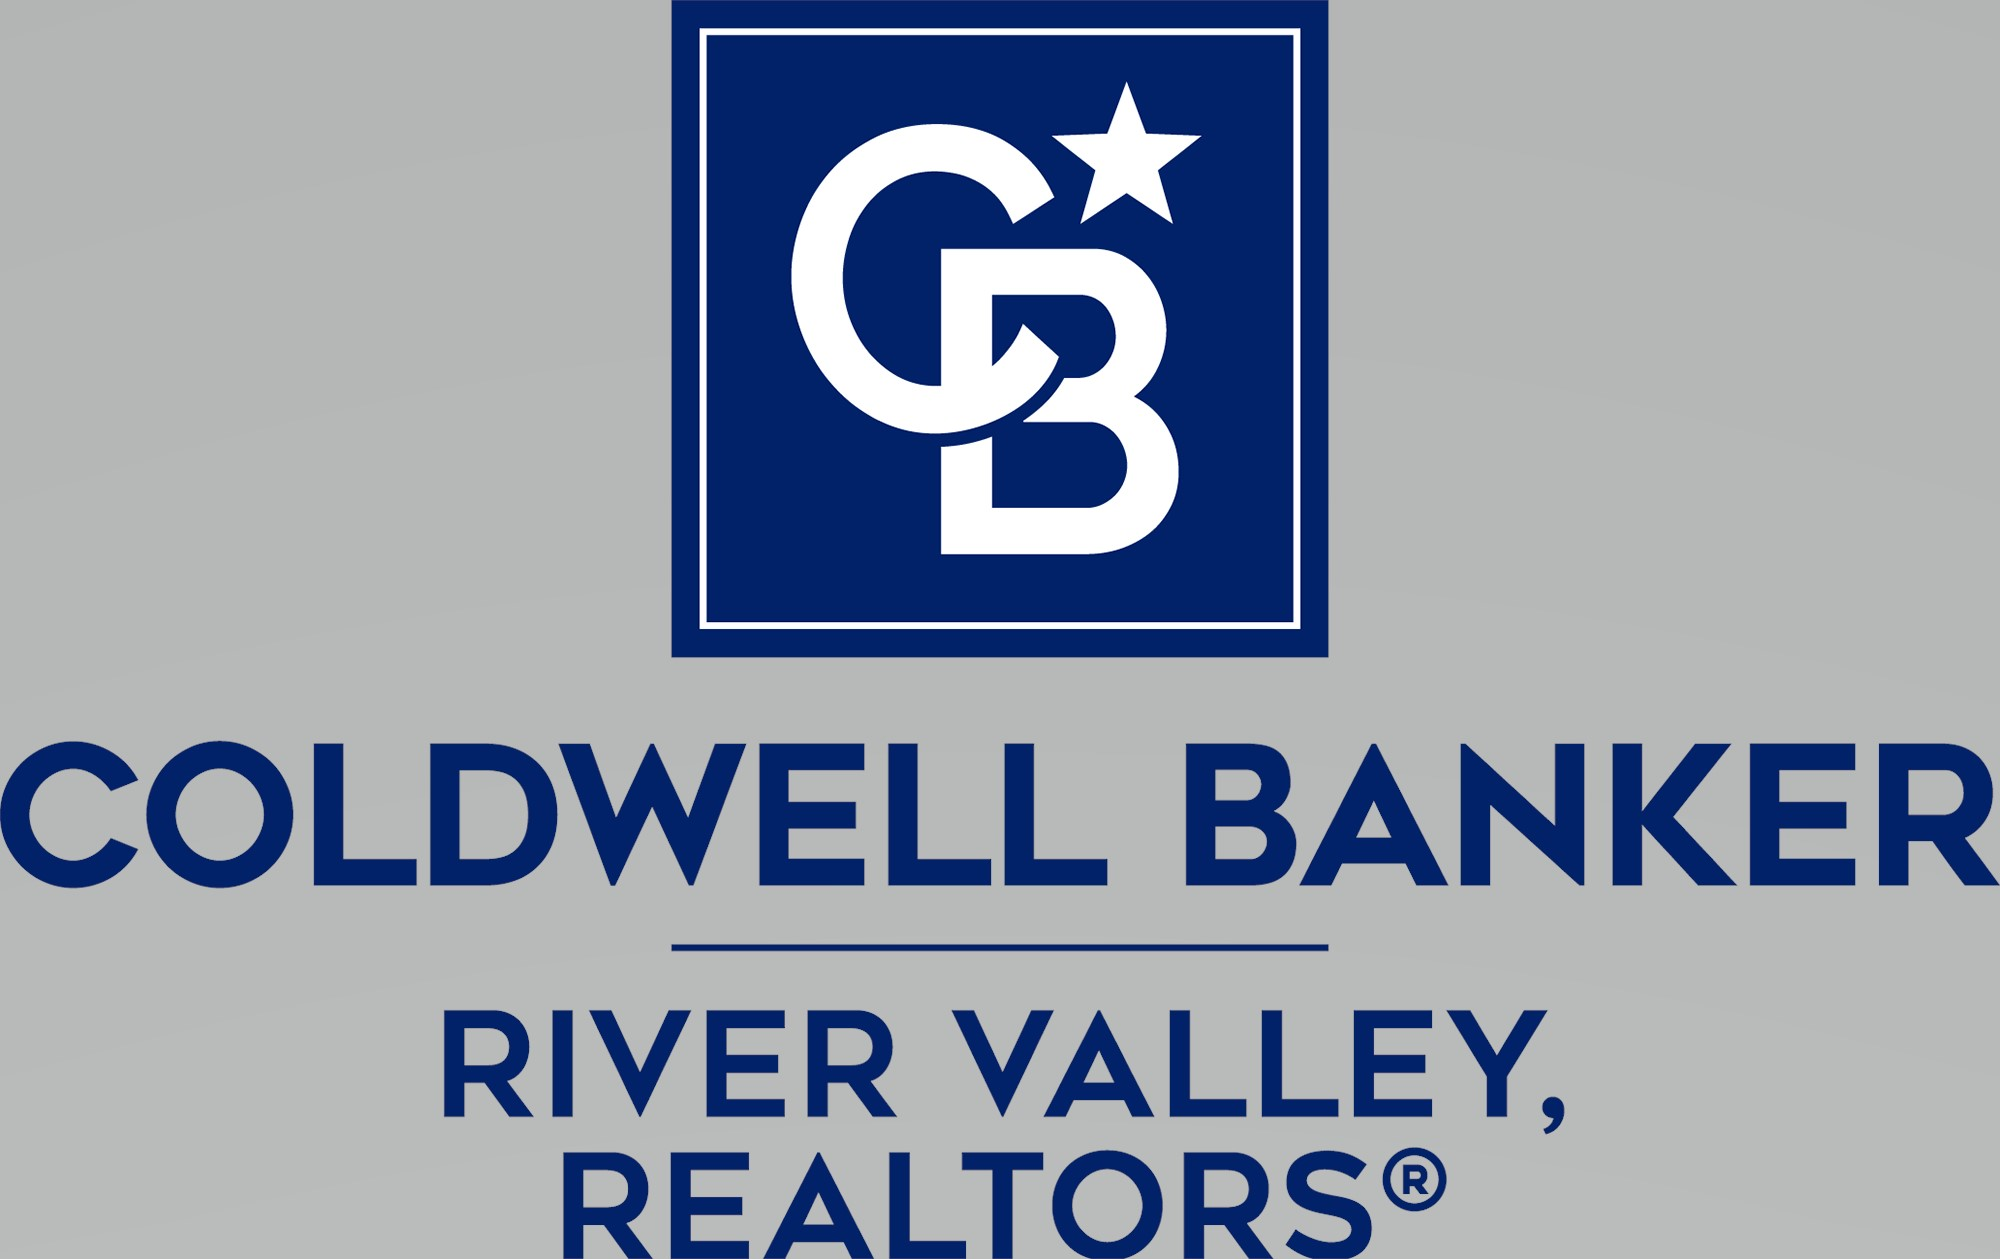 Jerry Van Hoof - Coldwell Banker River Valley Realtors